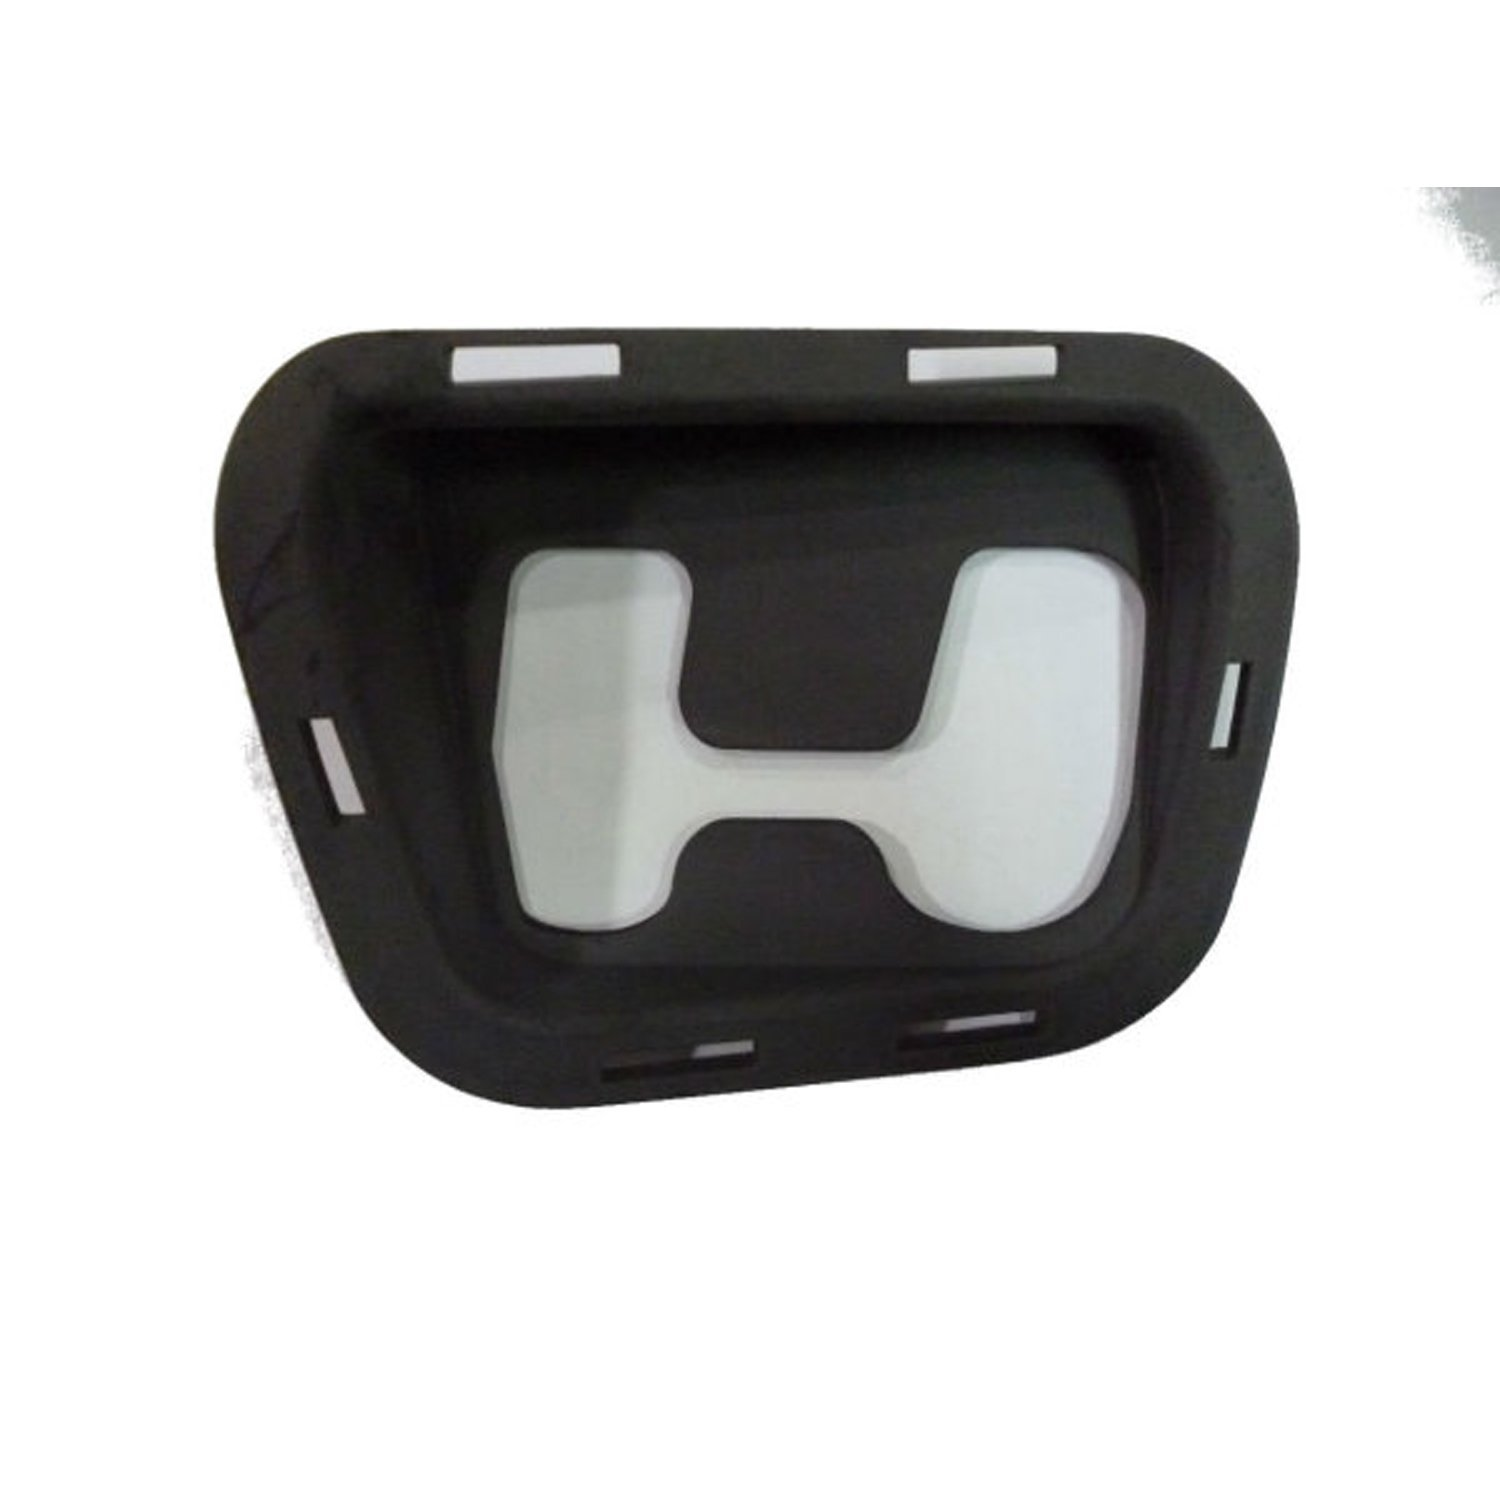 Crash Parts Plus Front Tow Hook Cover for Chevrolet Avalanche, Suburban, Tahoe